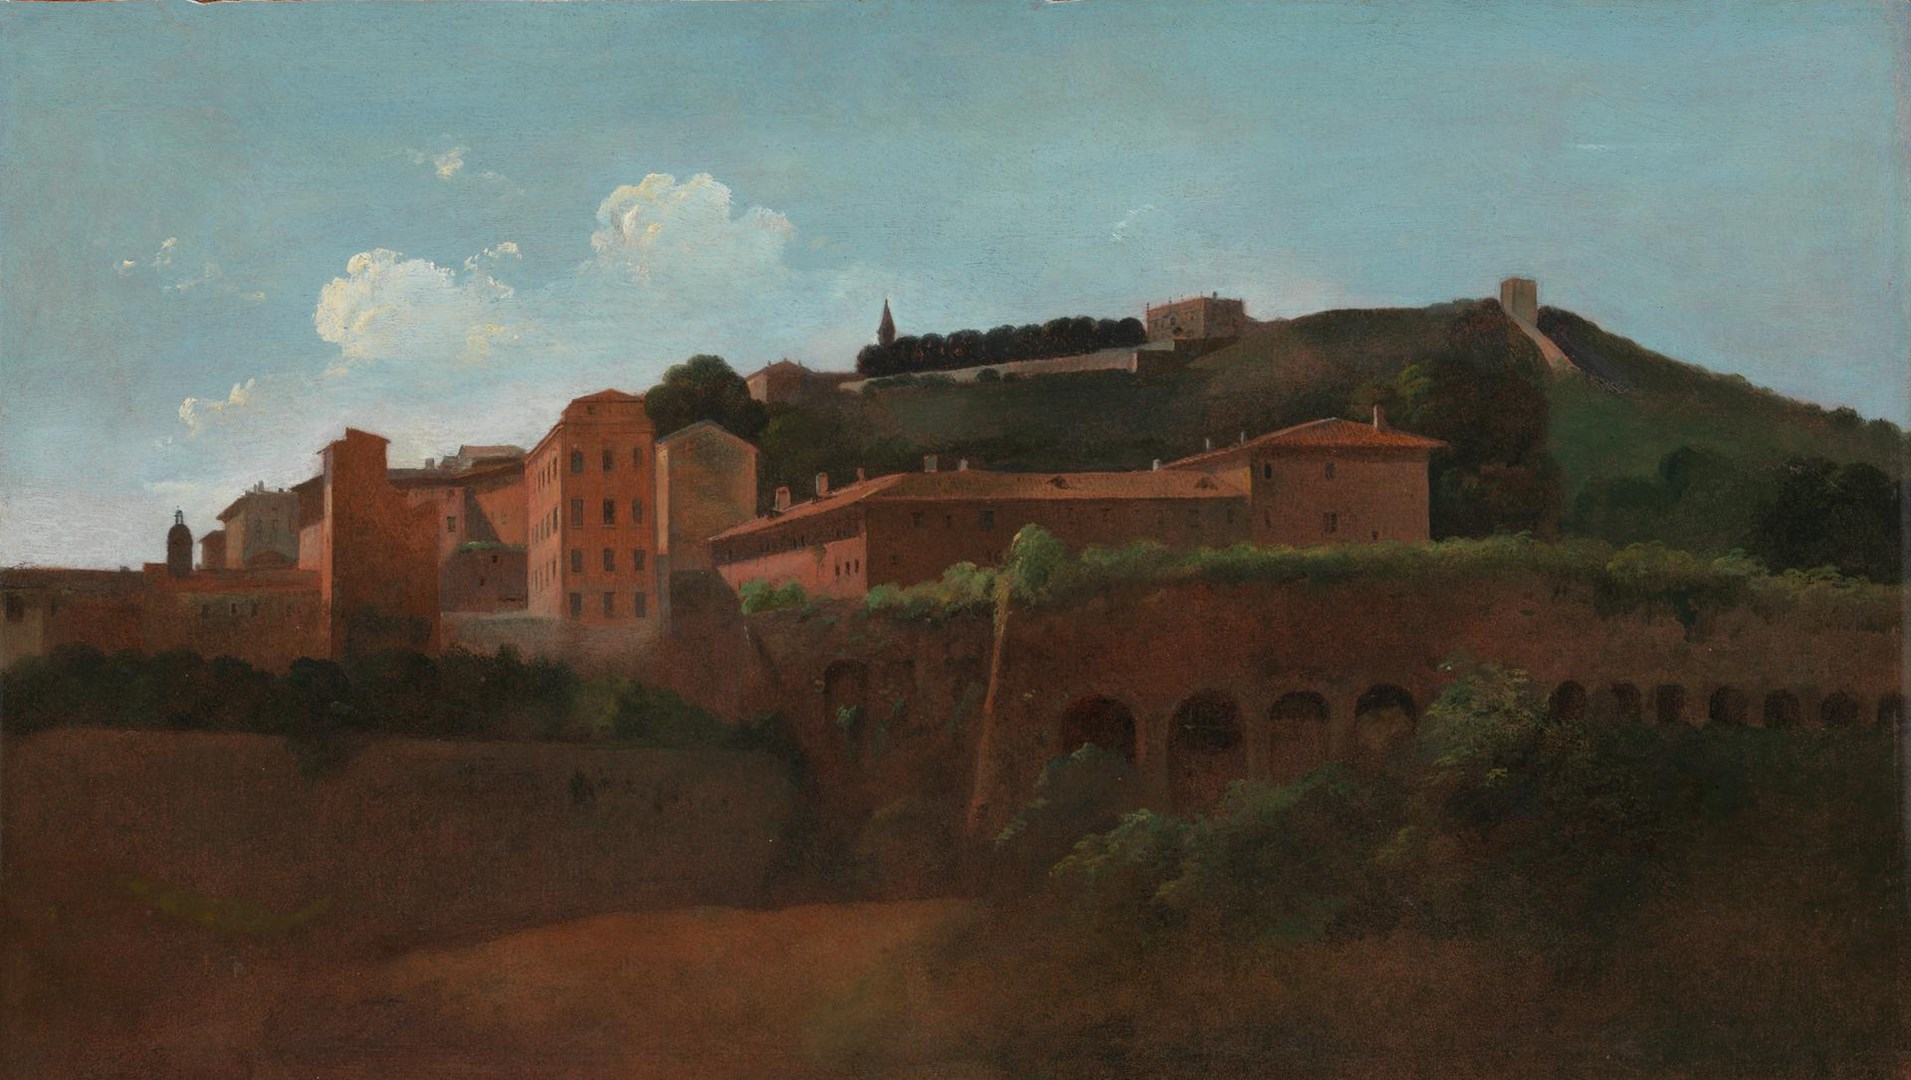 The Fourvière Hill at Lyon by British (?)